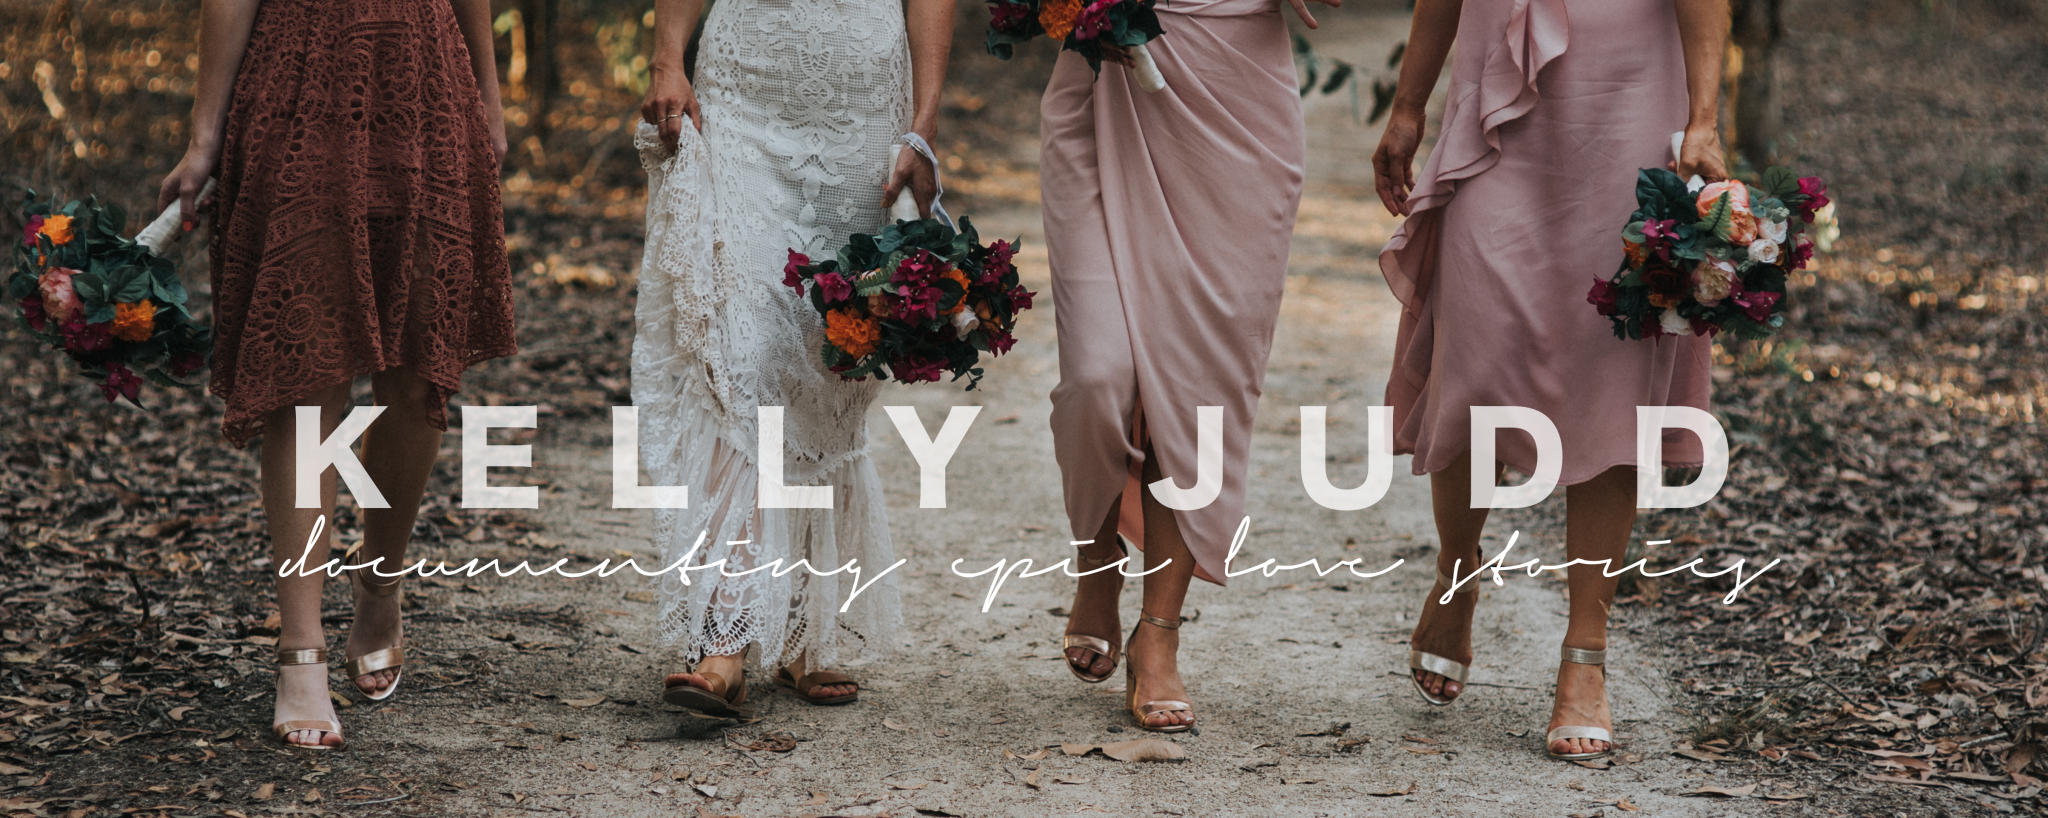 Darwin Photographer + Videographer – Kelly Judd – Family Newborn Wedding Photography Candid & Natural